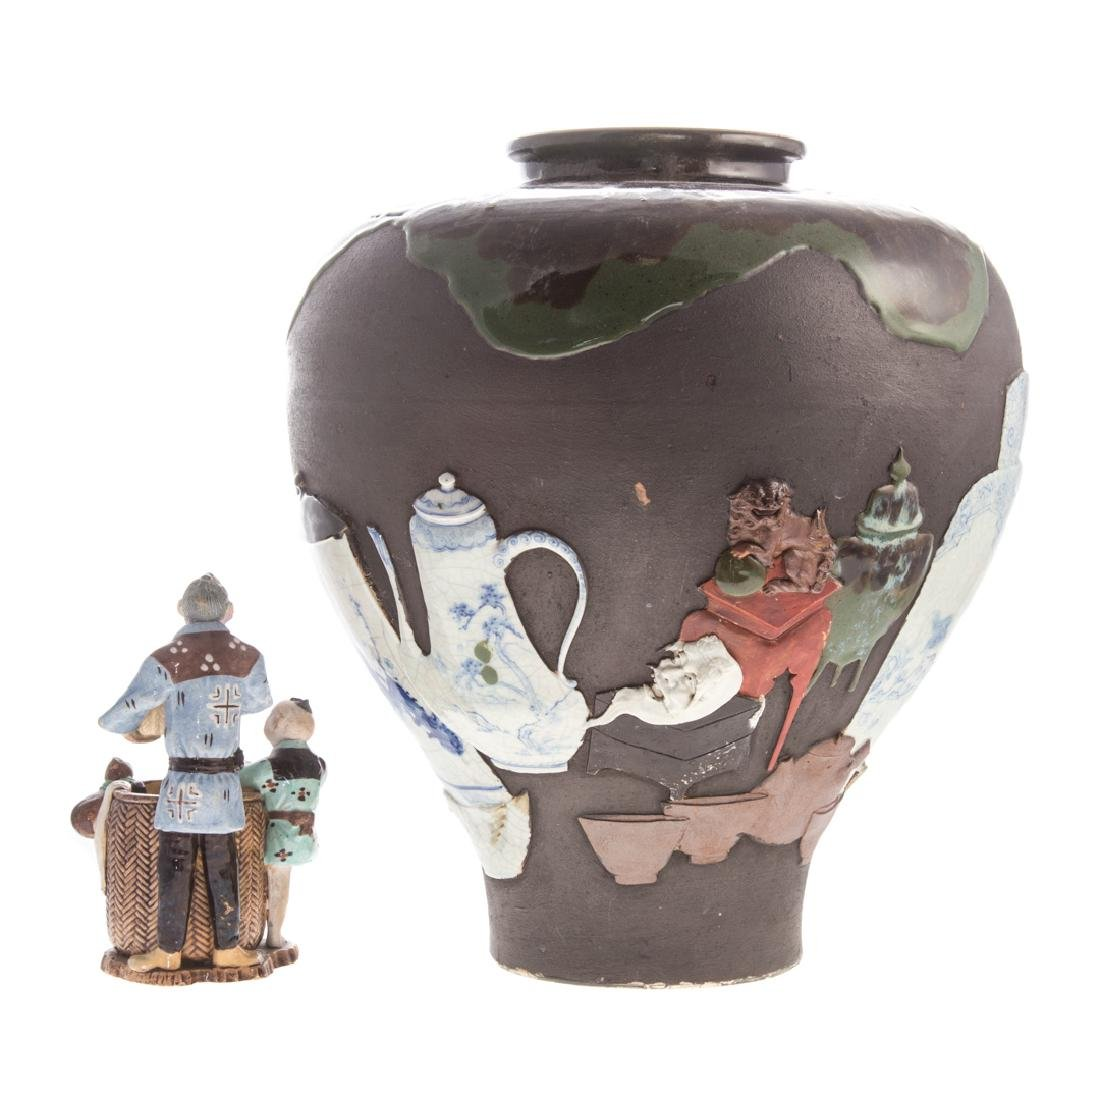 Japanese Sumida Gawa vase and figure group - 2